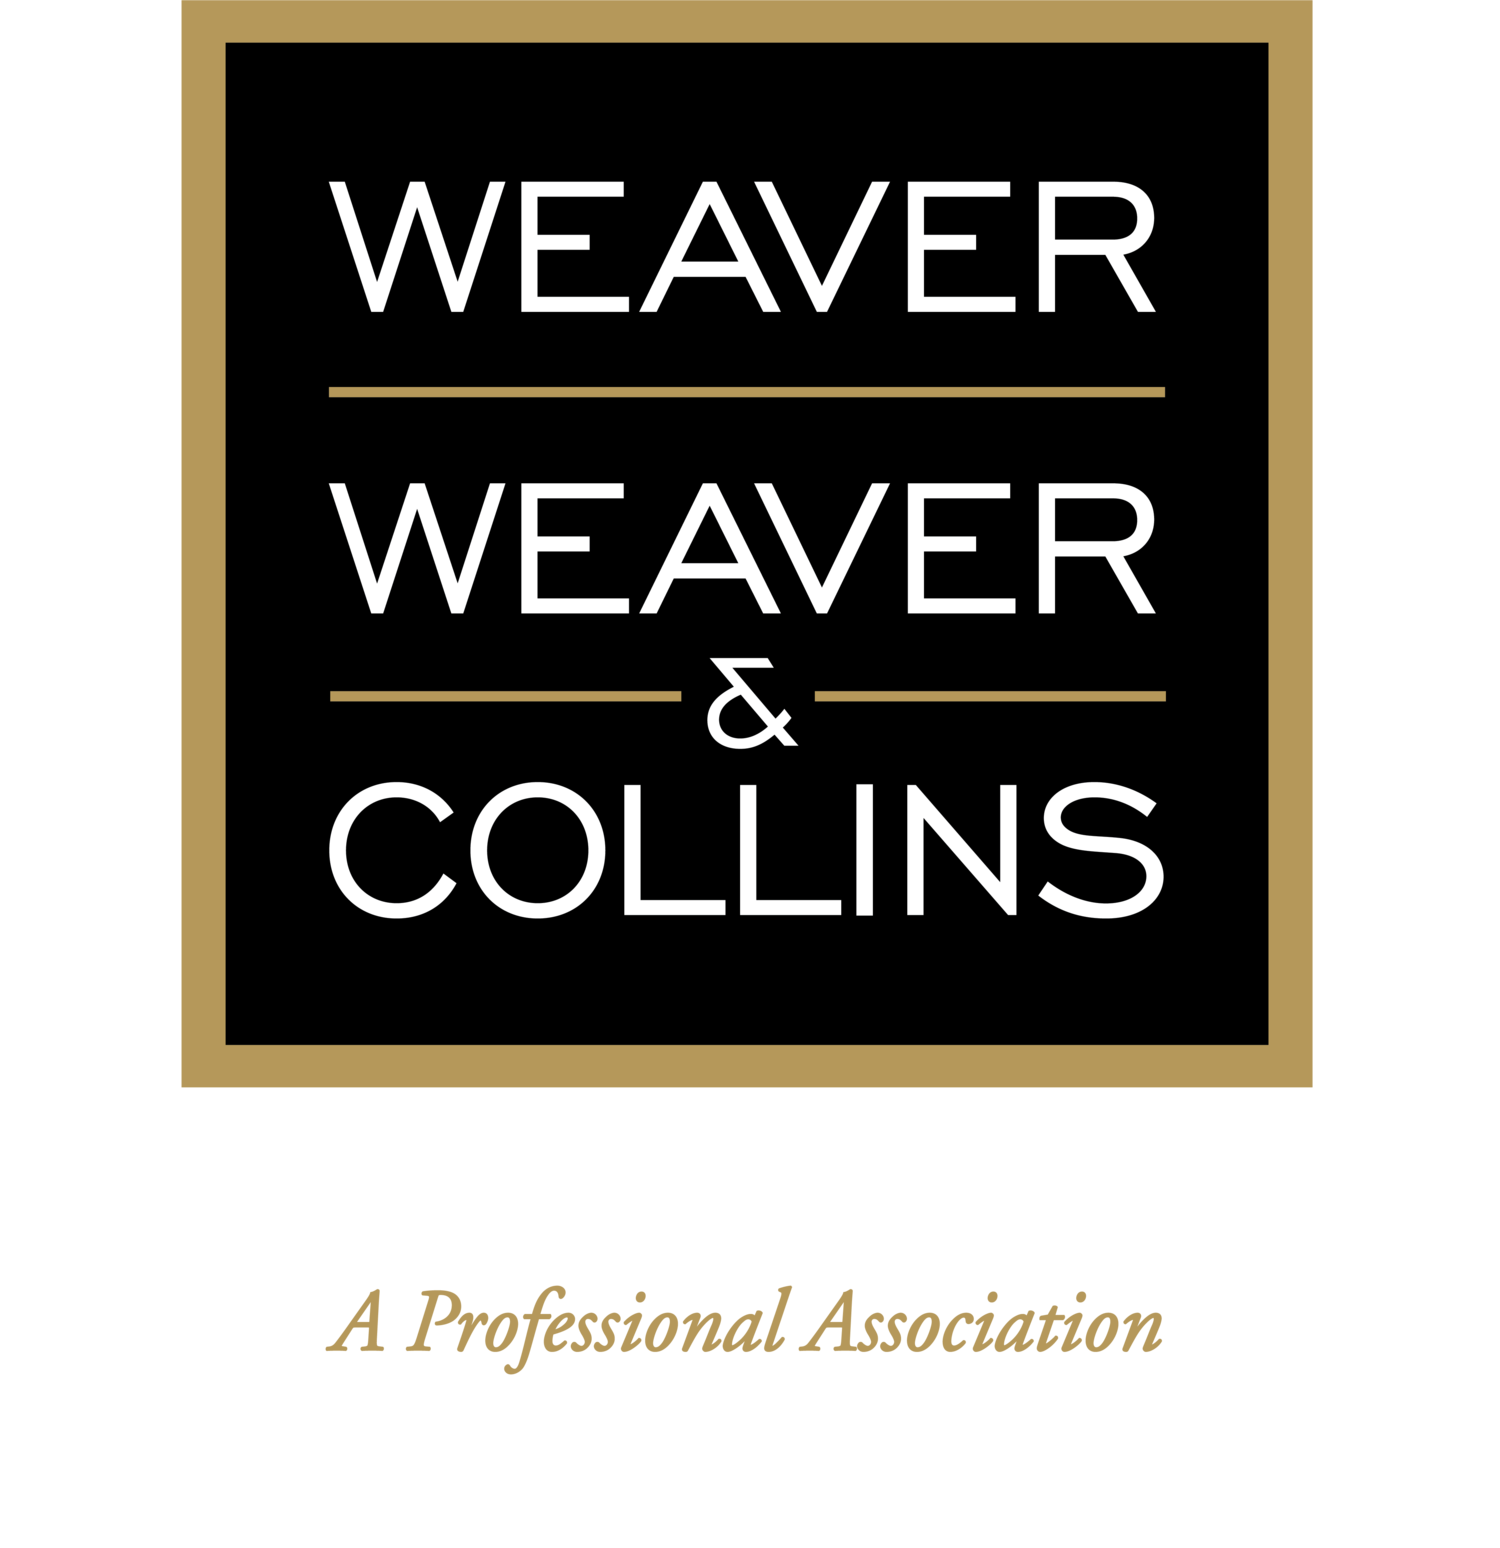 Weaver, Weaver & Collins, P.A. – Attorneys At Law